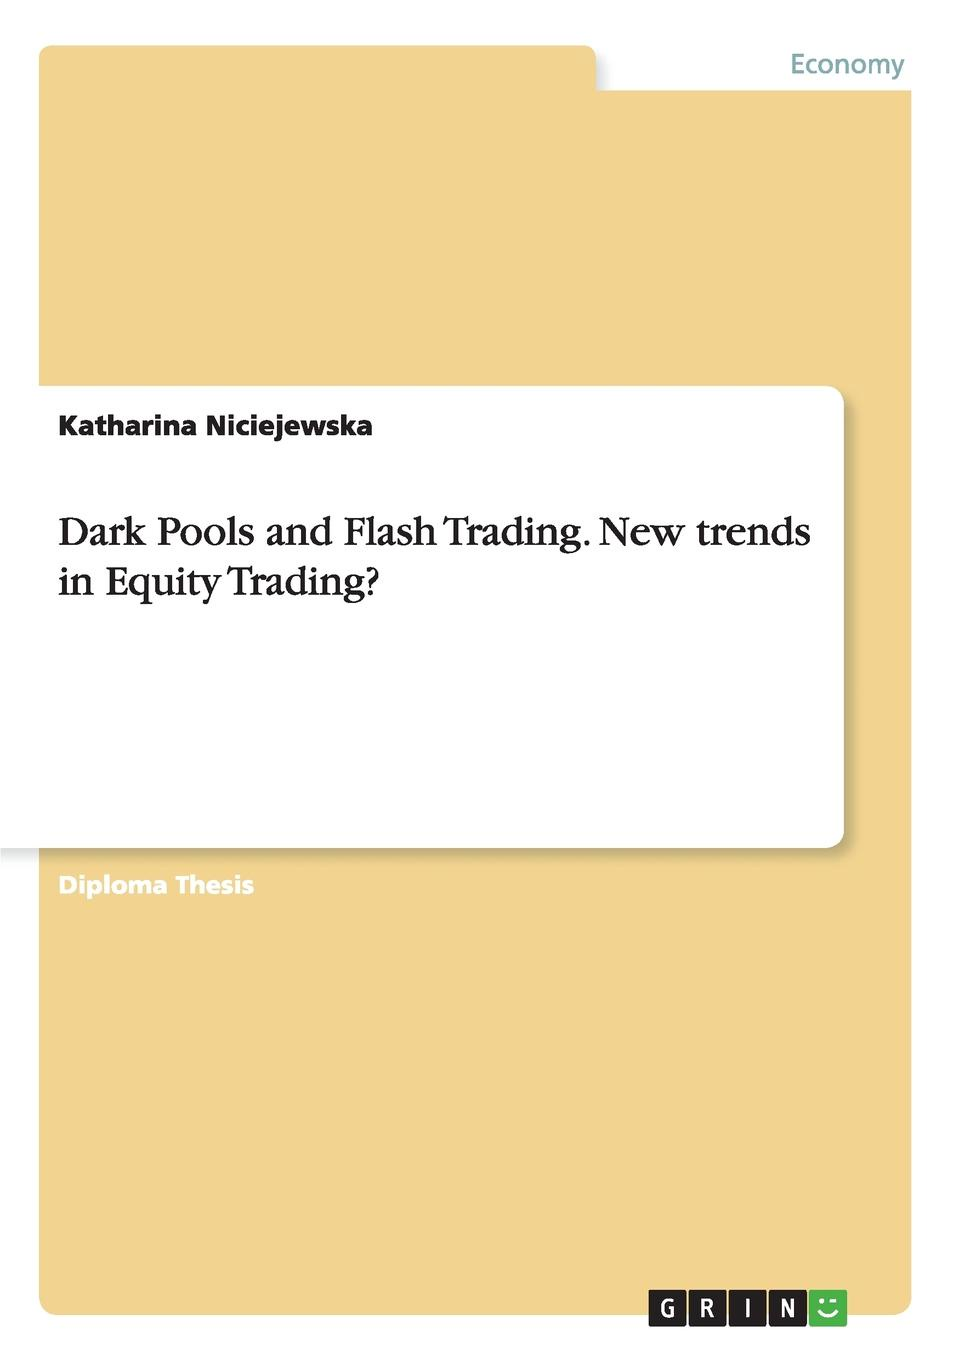 Katharina Niciejewska Dark Pools and Flash Trading. New trends in Equity Trading. leon wilson business of share trading from starting out to cashing in with trading